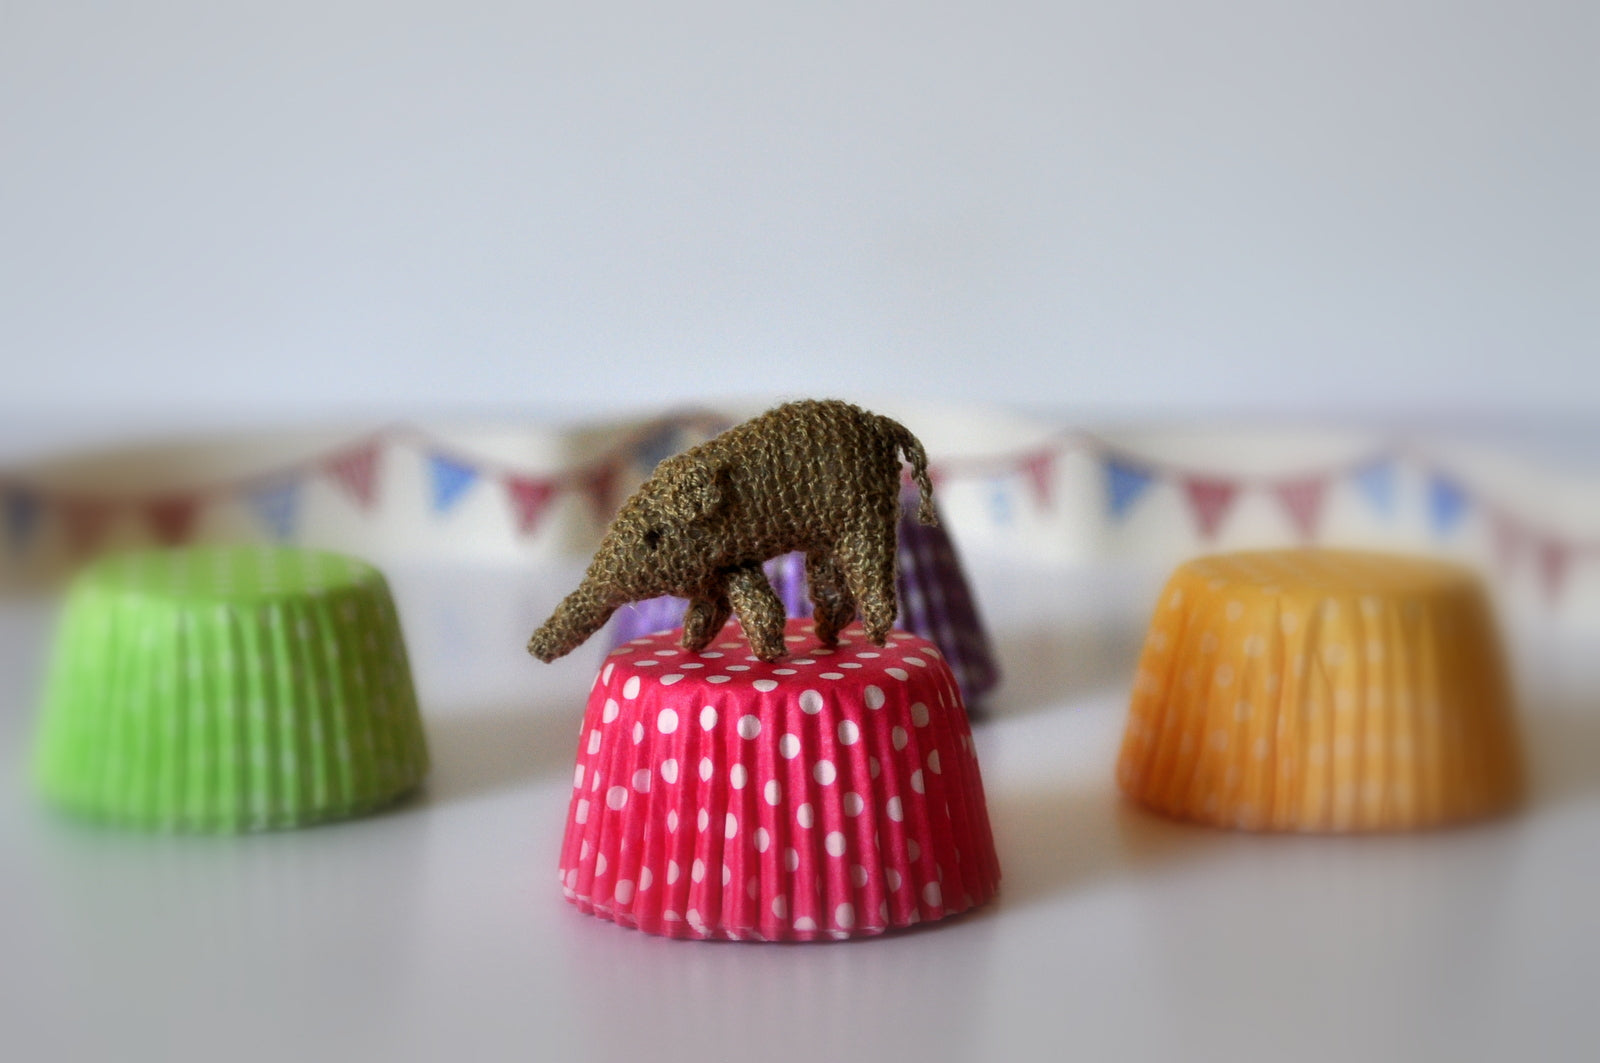 Circus Elephant Soft Toy #1 by Jenny Tomkins